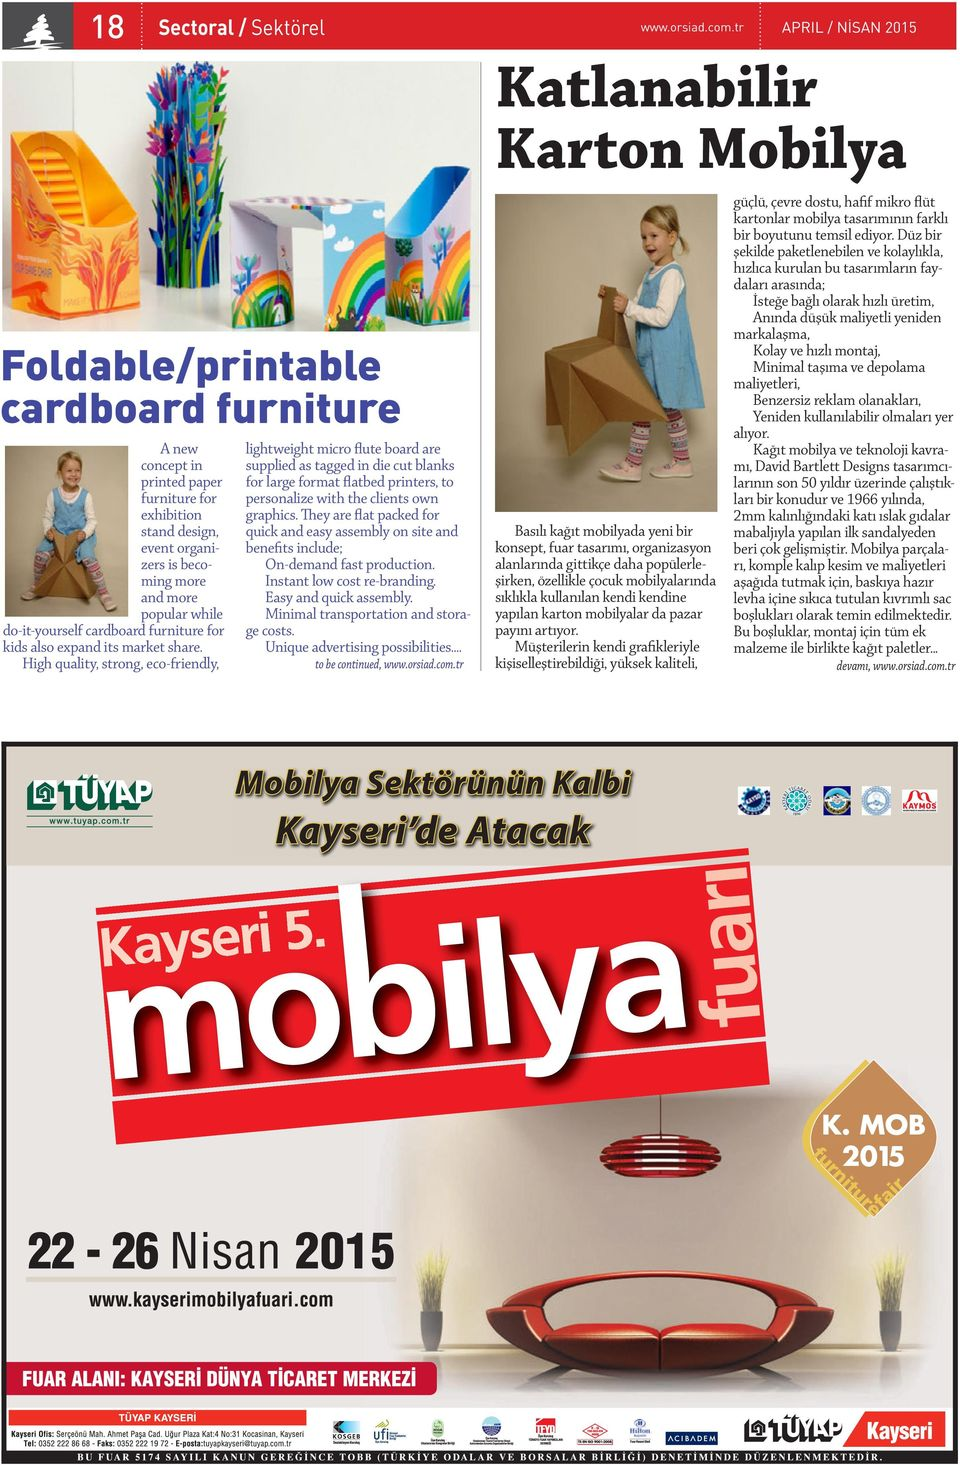 more popular while do-it-yourself cardboard furniture for kids also expand its market share.